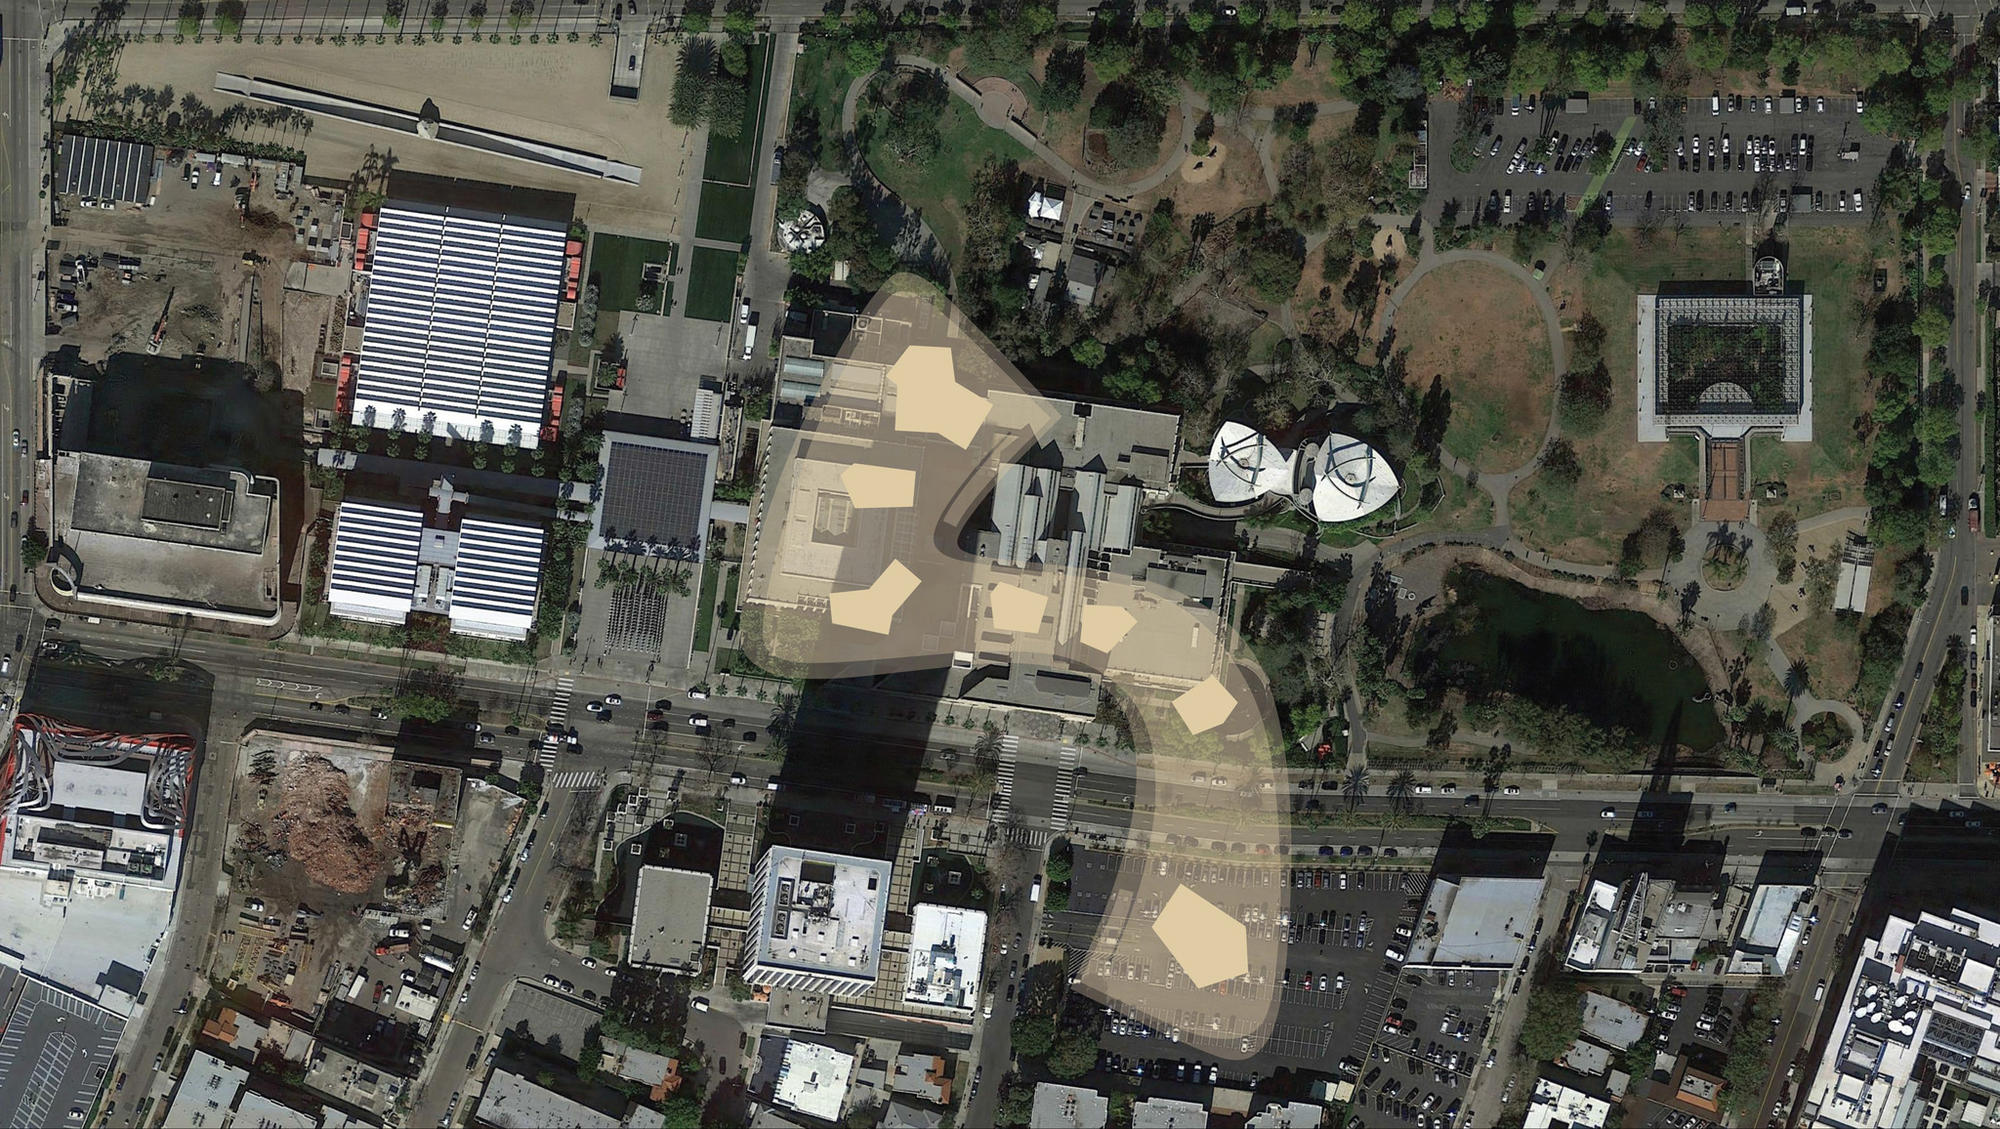 The footprint of the Zumthor design, which crosses Wilshire to what is now a LACMA-owned parking lot. Three 1965 buildings and a 1980s addition would be torn down.